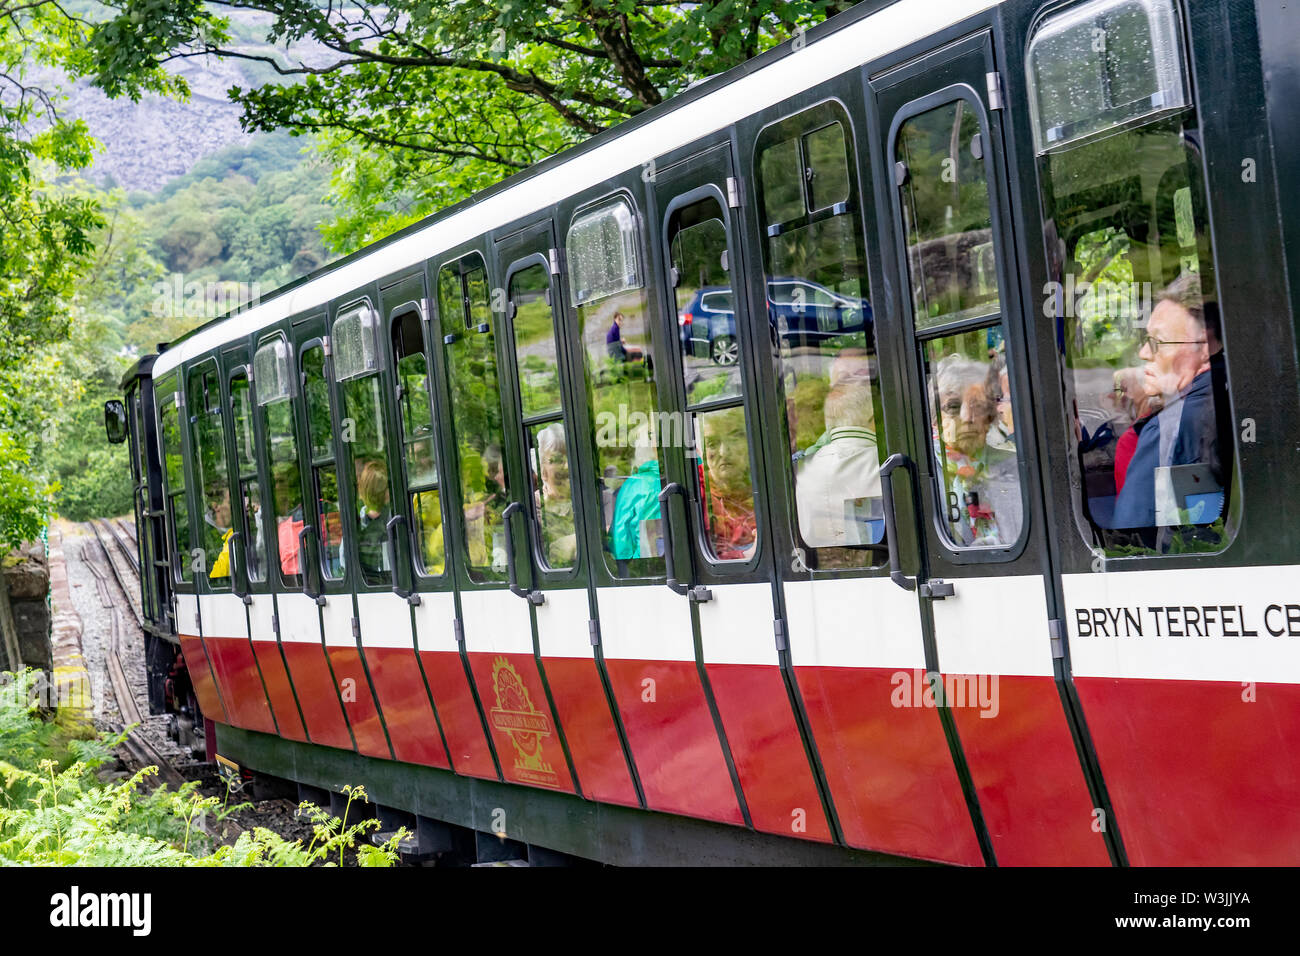 Mount Snowdon Railway, Llanberis, North Wales. A diesel train carrying passengers to the summit of Mount Snowdon - Stock Image